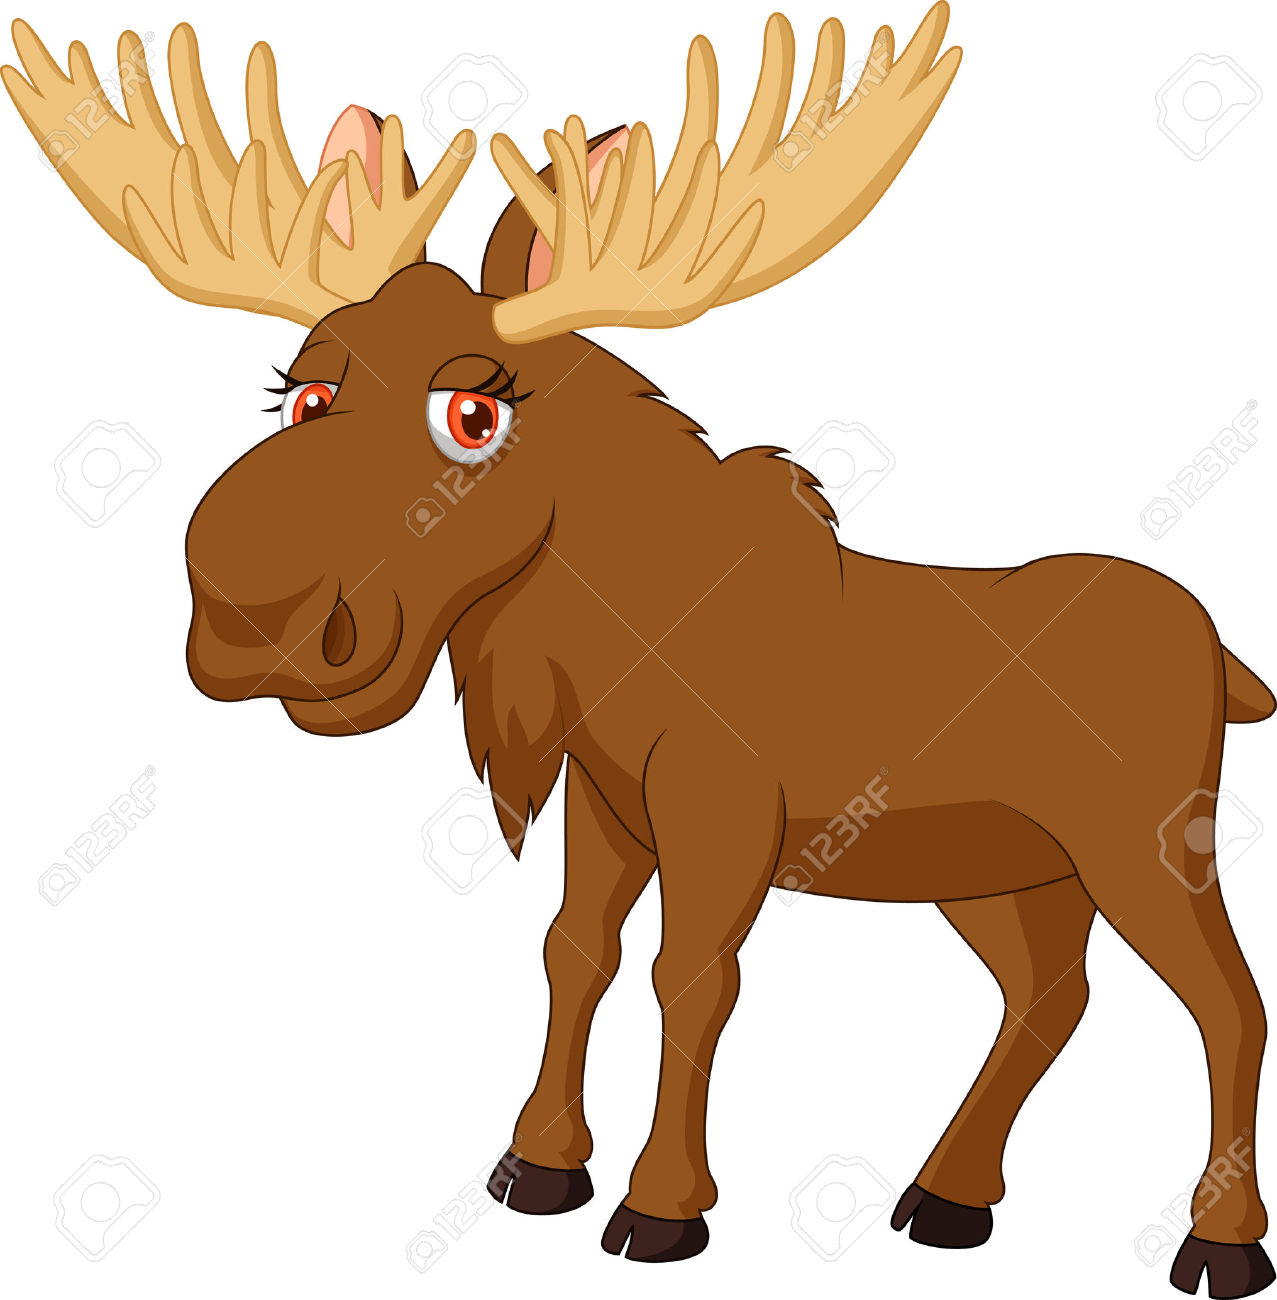 6,062 Elk Stock Vector Illustration And Royalty Free Elk Clipart.